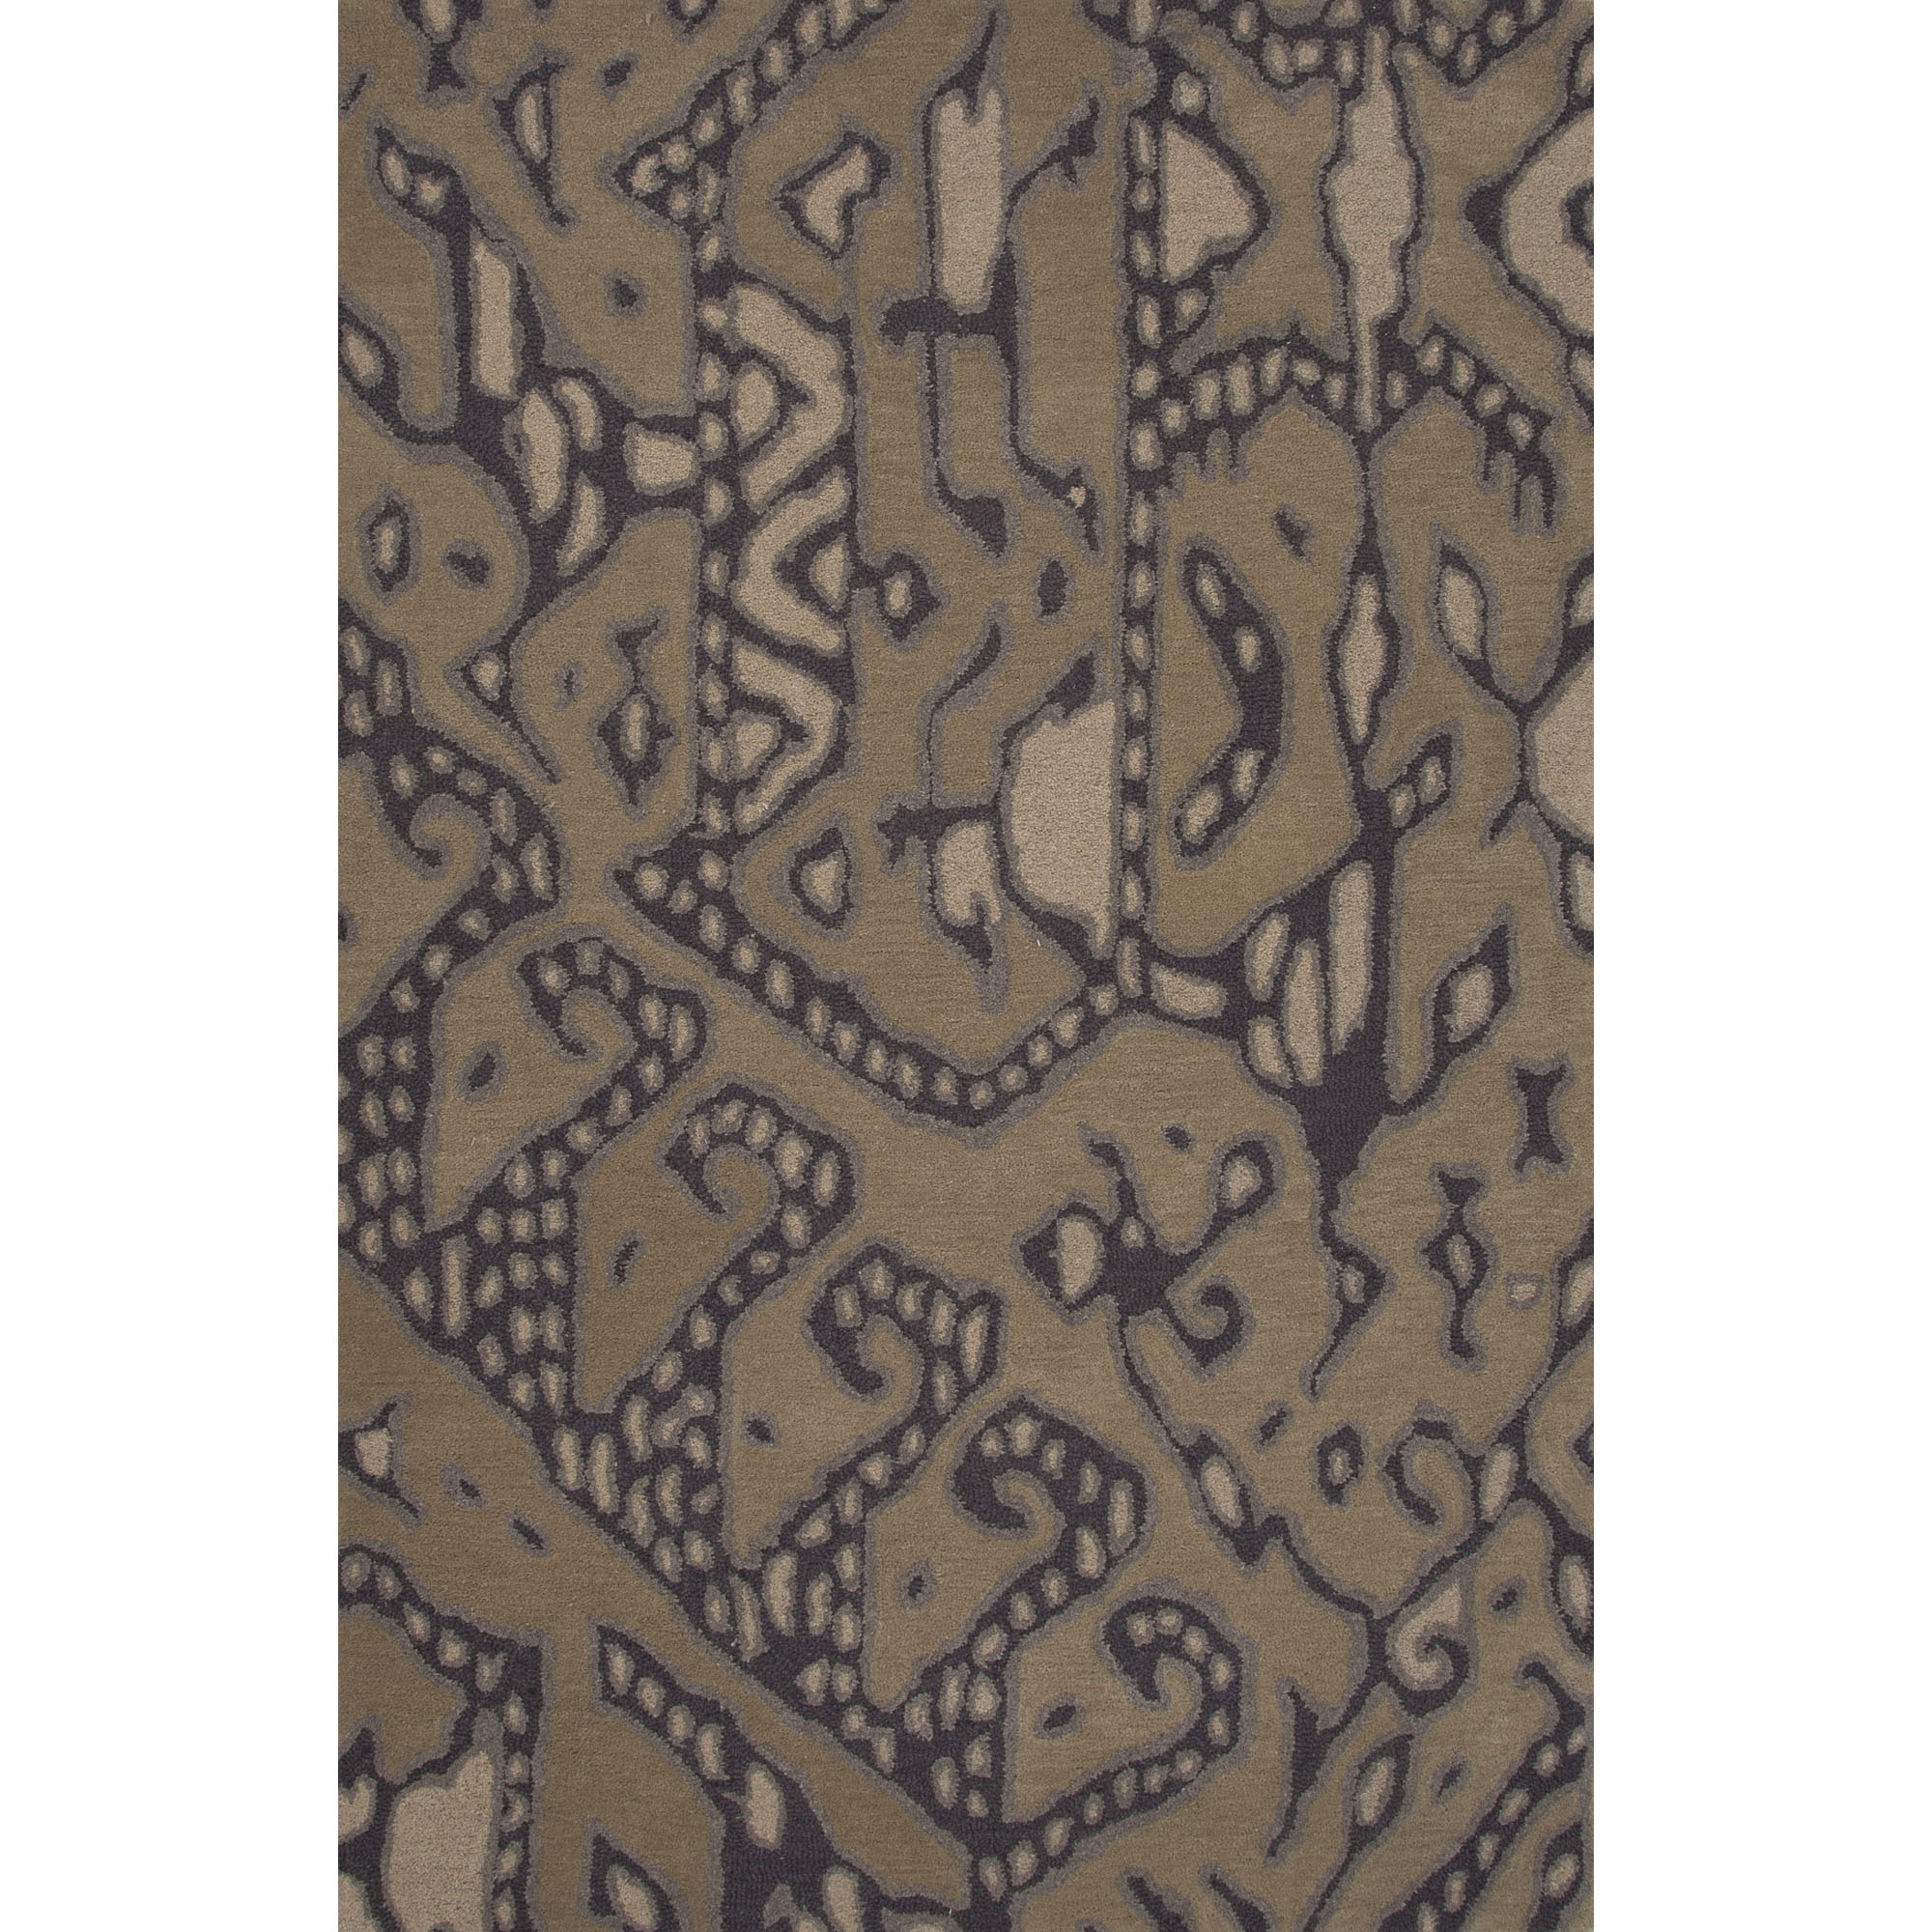 JAIPUR Rugs Traditions Made Modern Tufted 5 x 8 Rug - Item Number: RUG121363